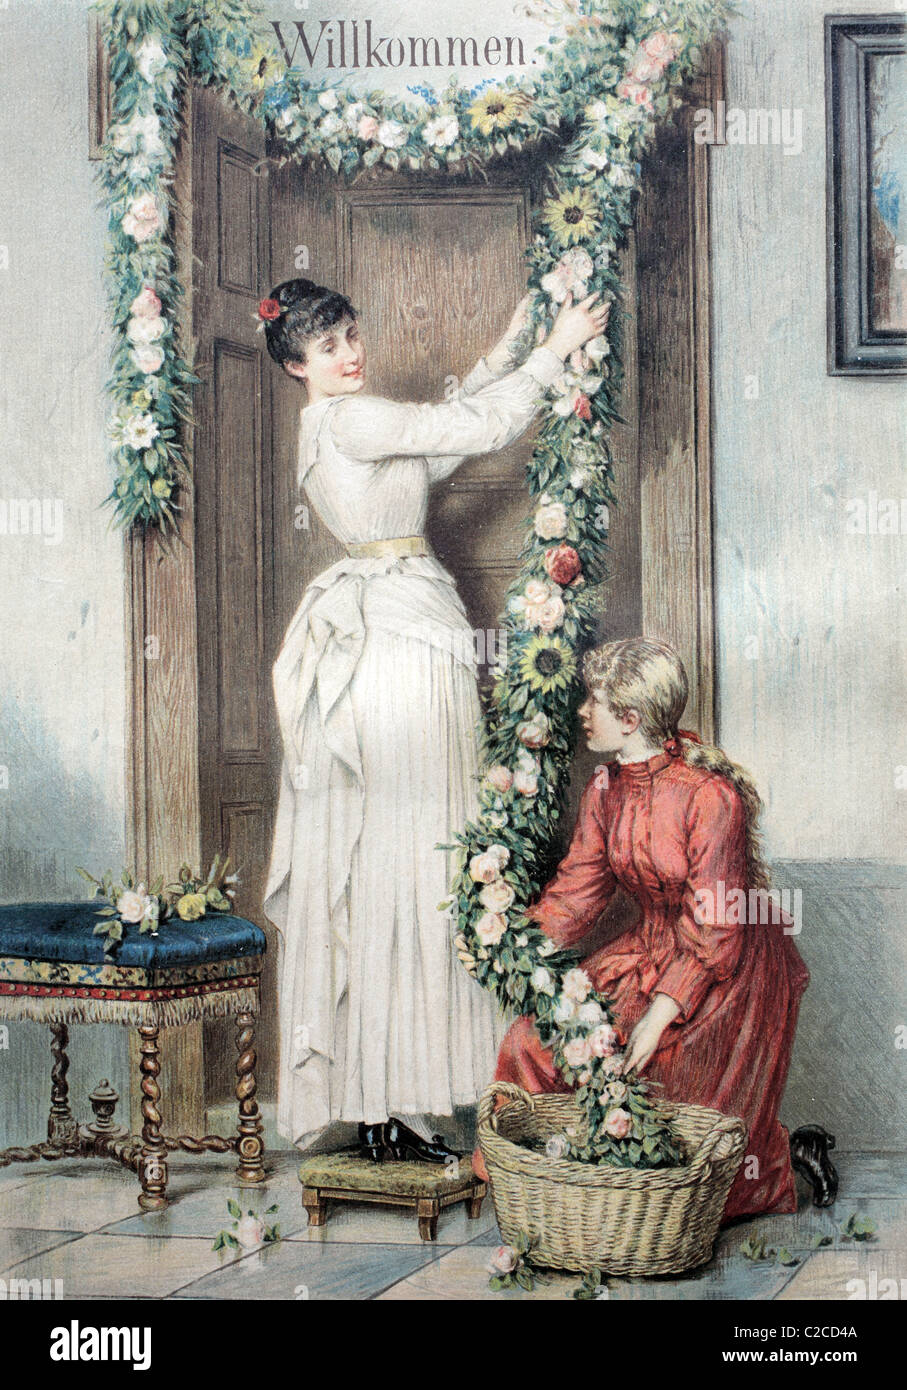 Welcome decoration are hung over a door, historical illustration circa 1893 - Stock Image